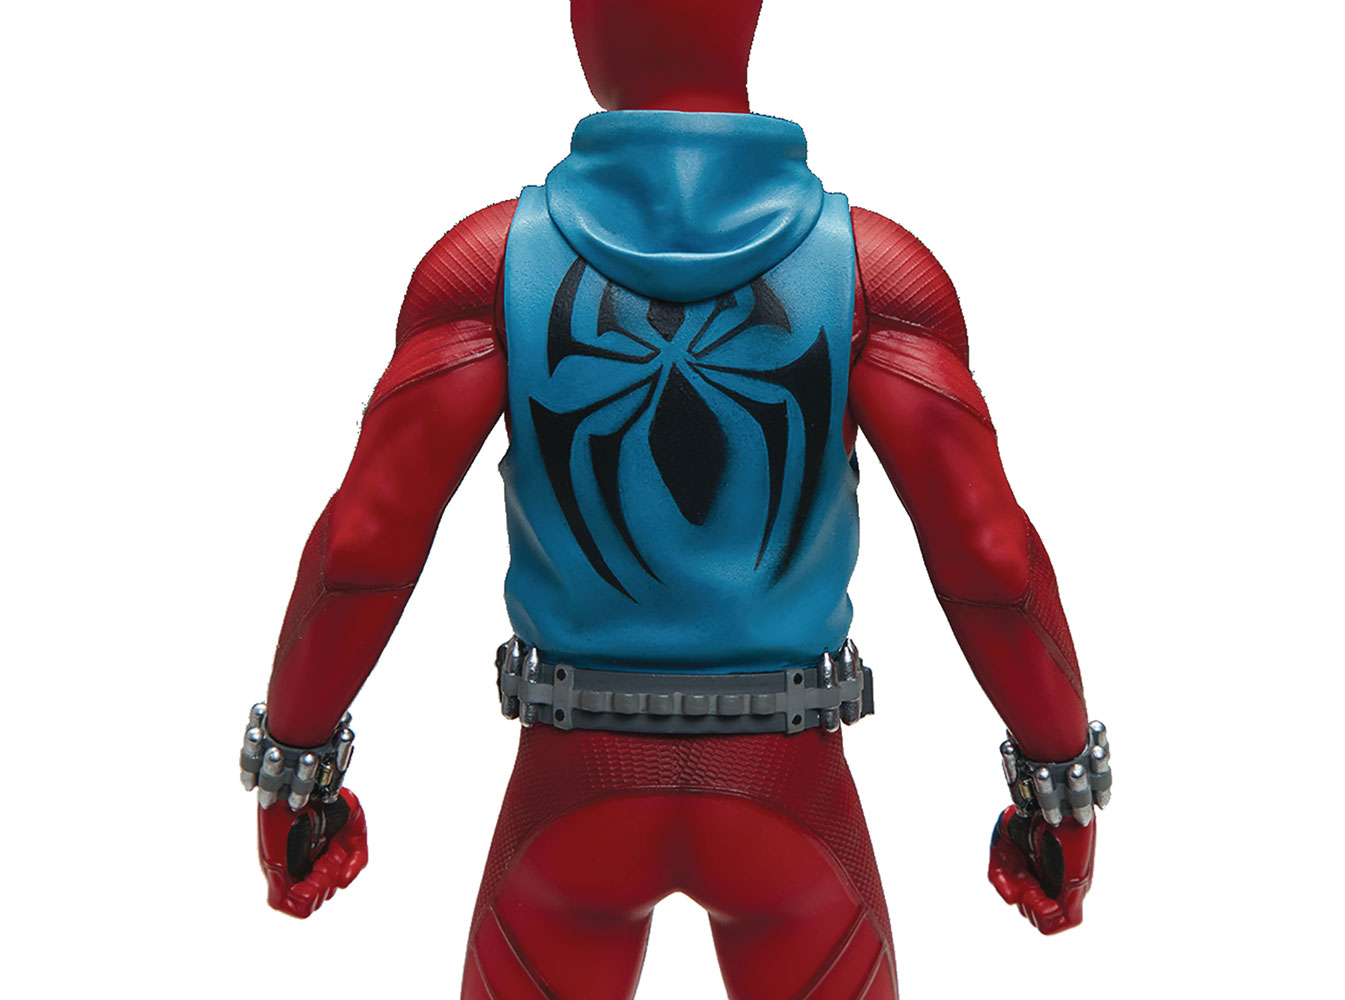 Marvel Armory Spider-Man Resin Statue: Scarlet Spider  (1/10 Scale) - Pcs Collectibles